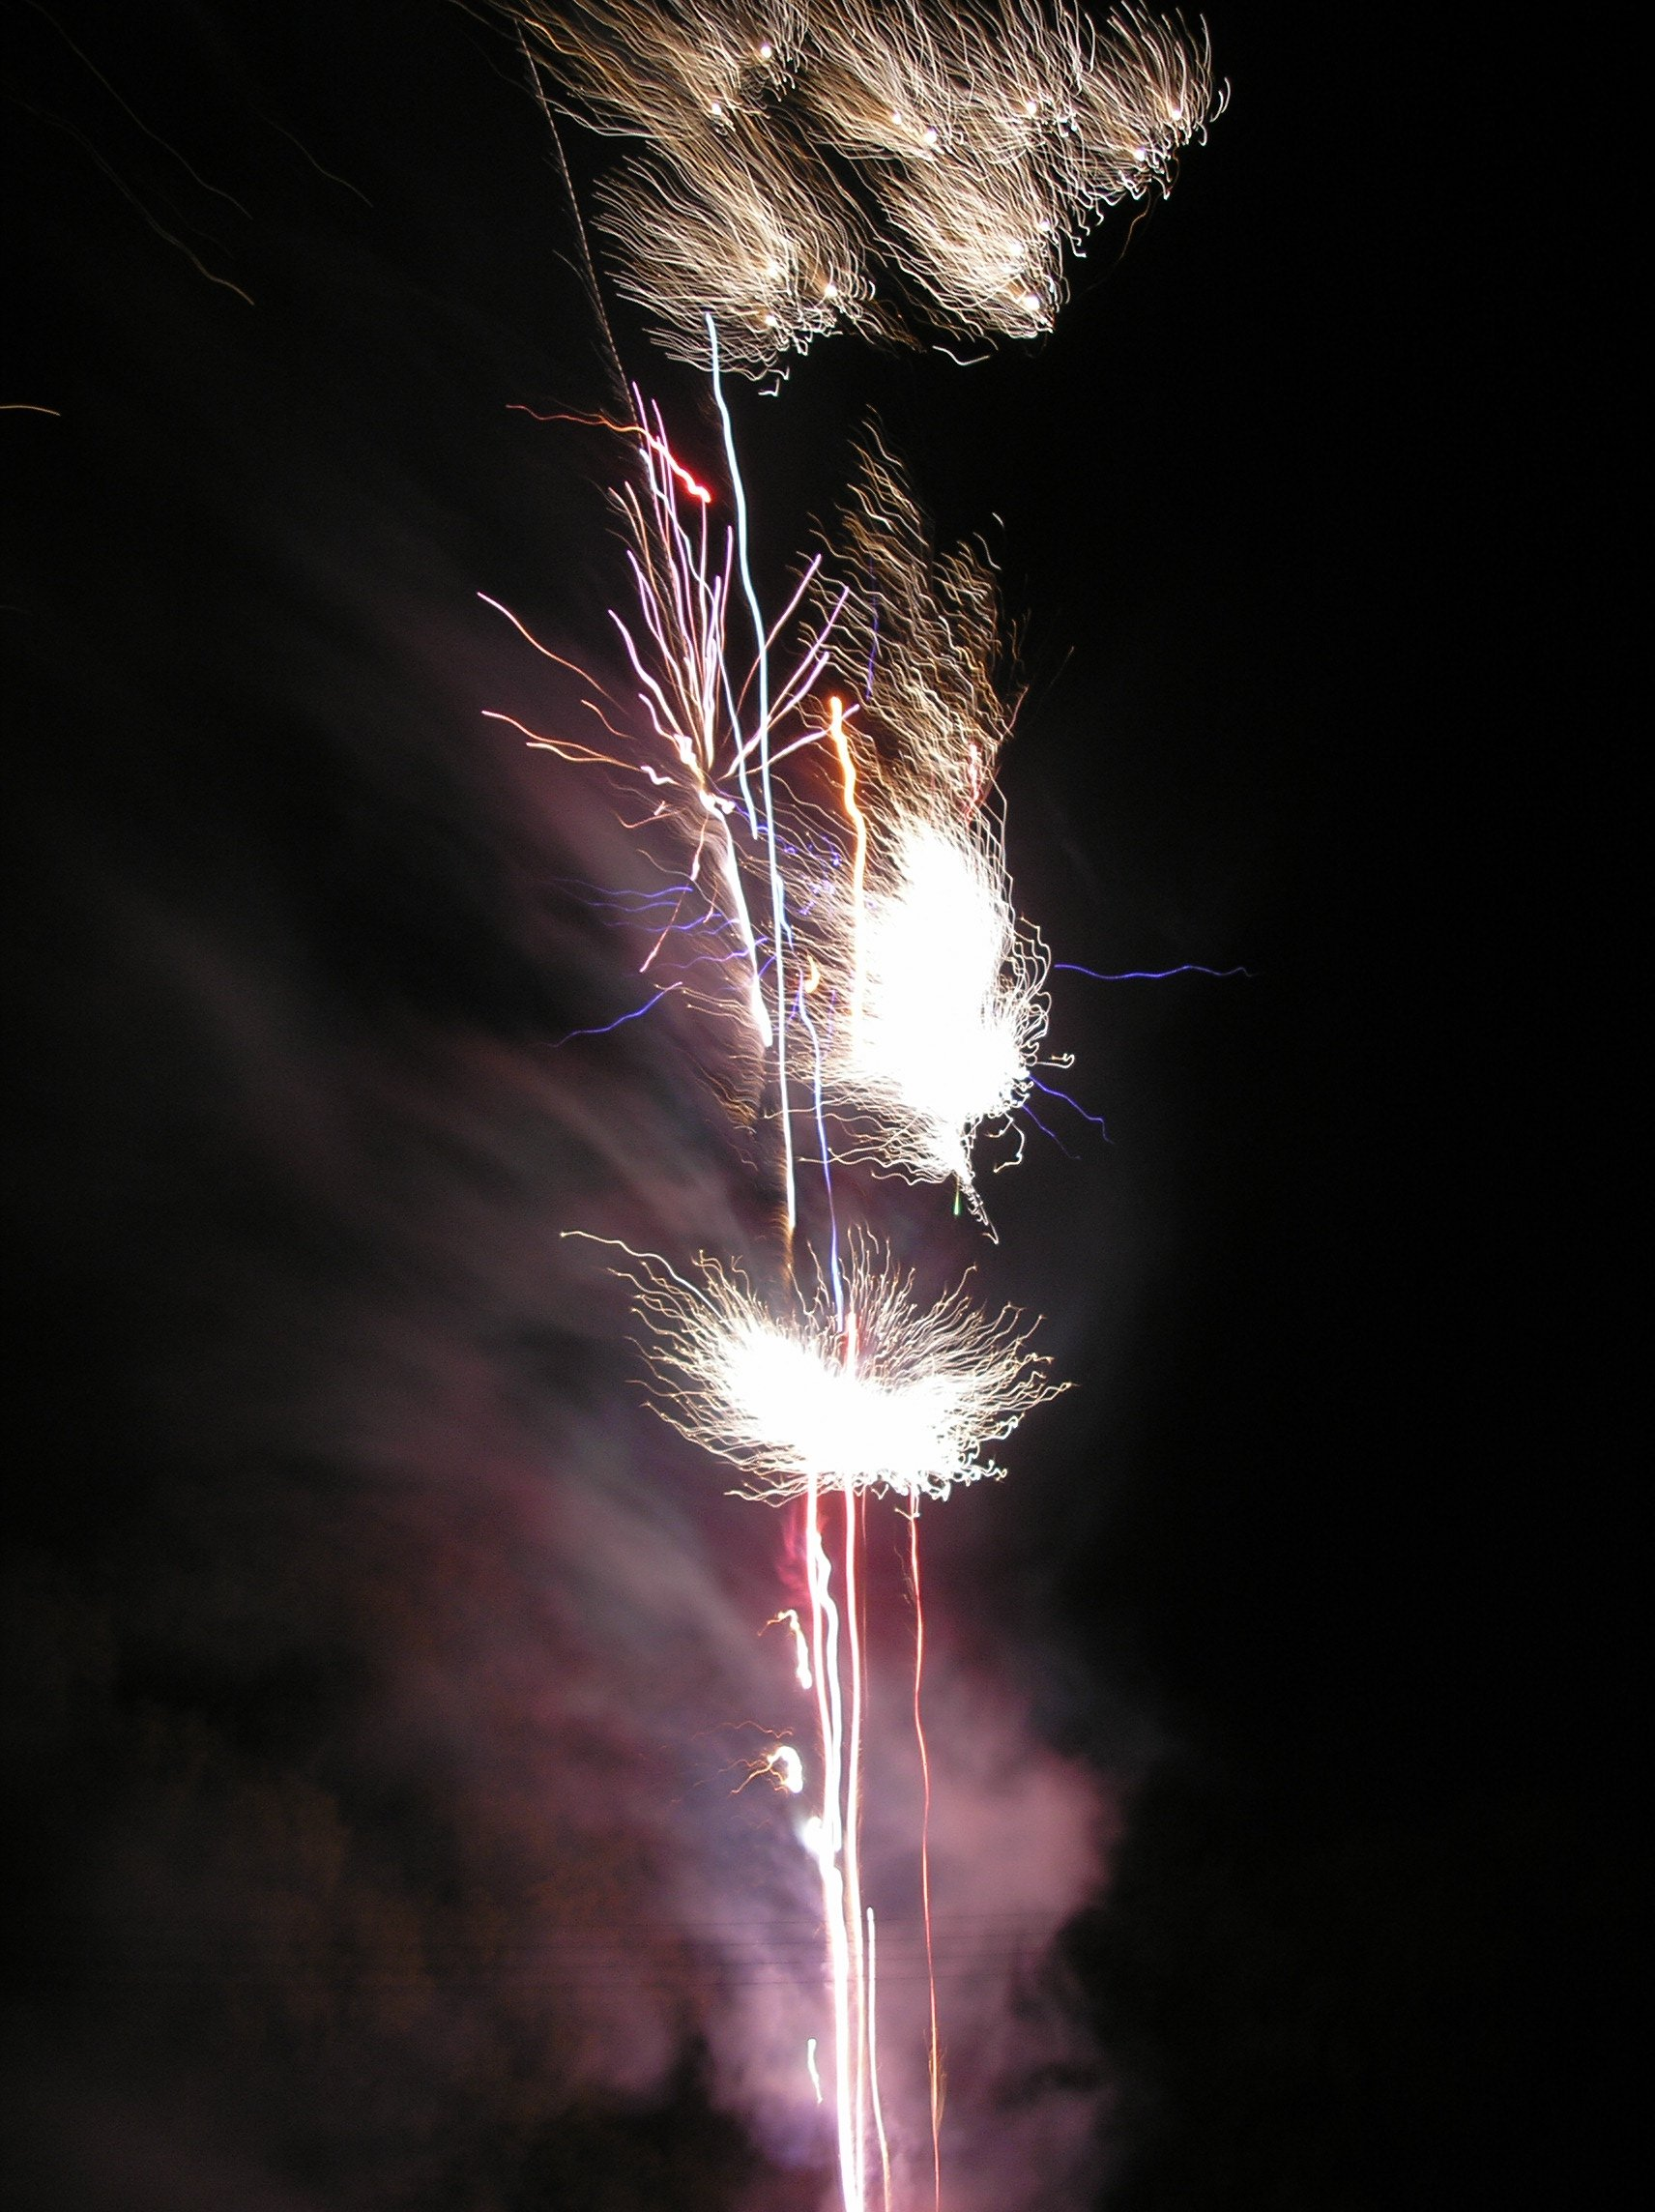 Fireworks at the village bonfore celebrations in Tostock, Suffolk November 2008